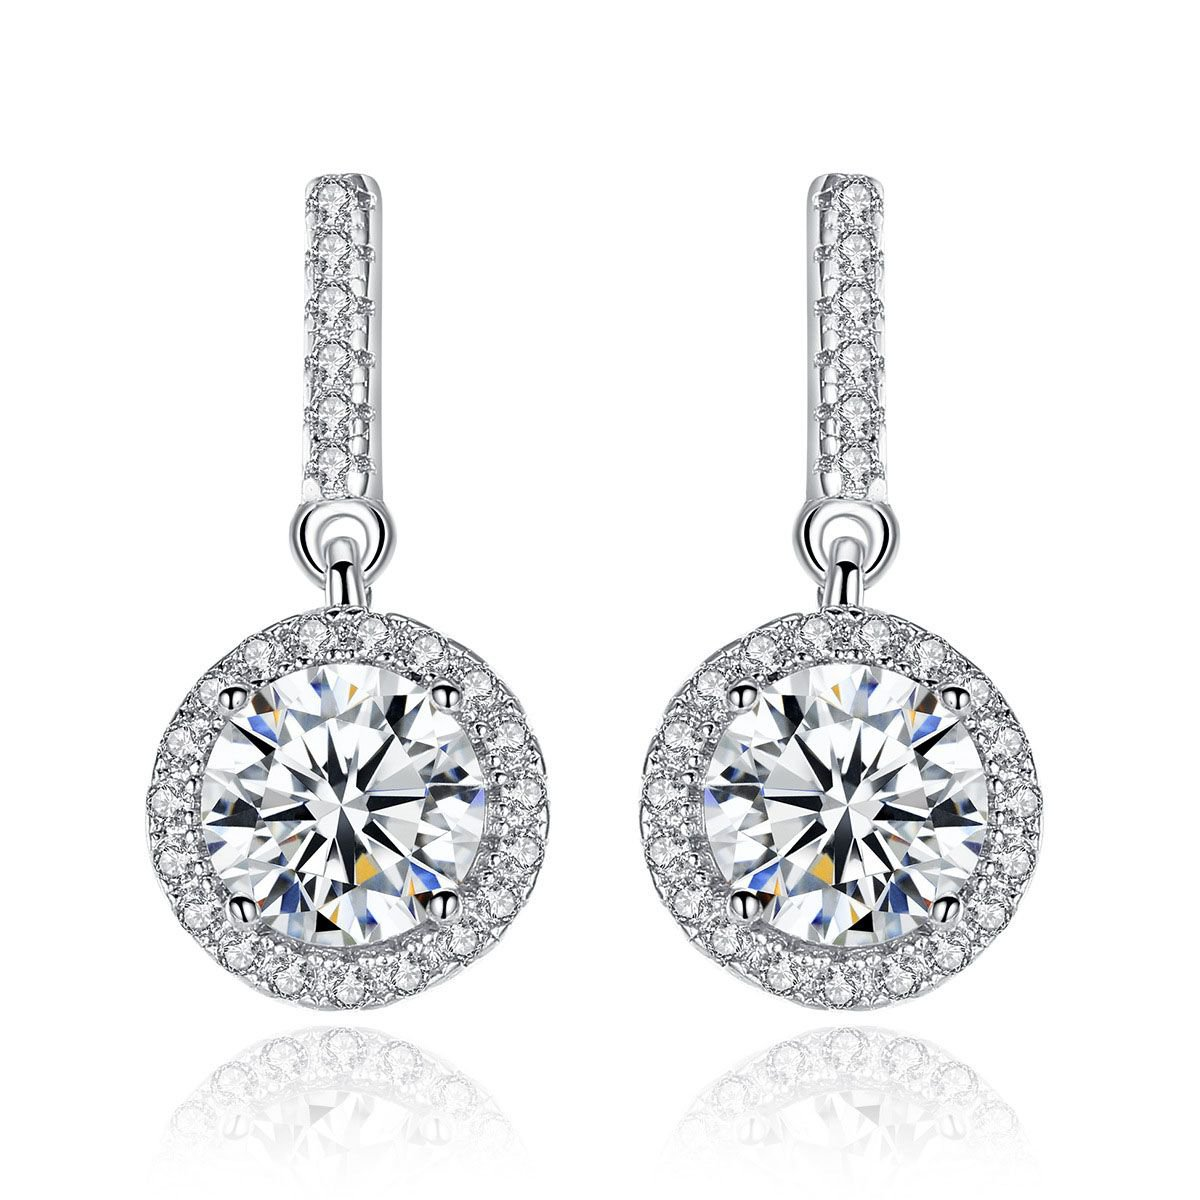 Round Cubic Zirconia 925 Sterling Silver Dangling Earrings